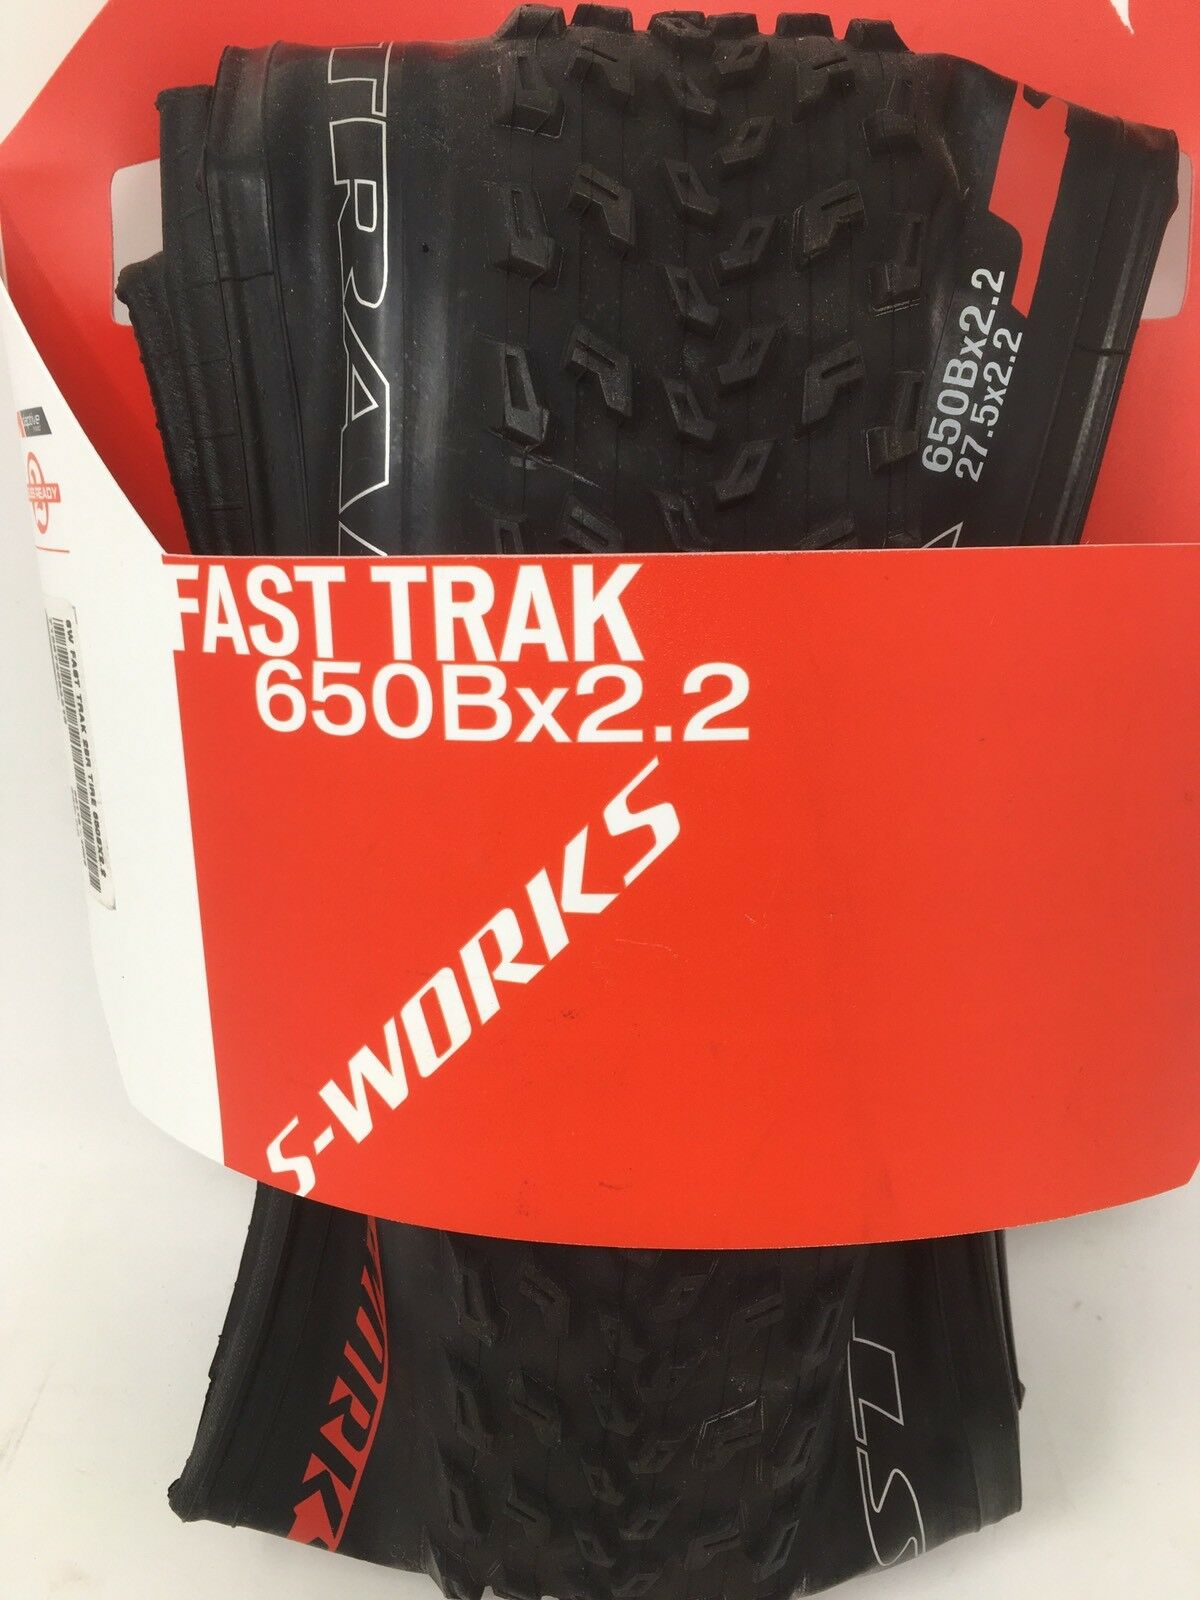 NEW Specialized S-WORKS  FAST TRAK Mountain Bike Tire 650B x 2.2 2Bliss Tubeless  cheap and top quality